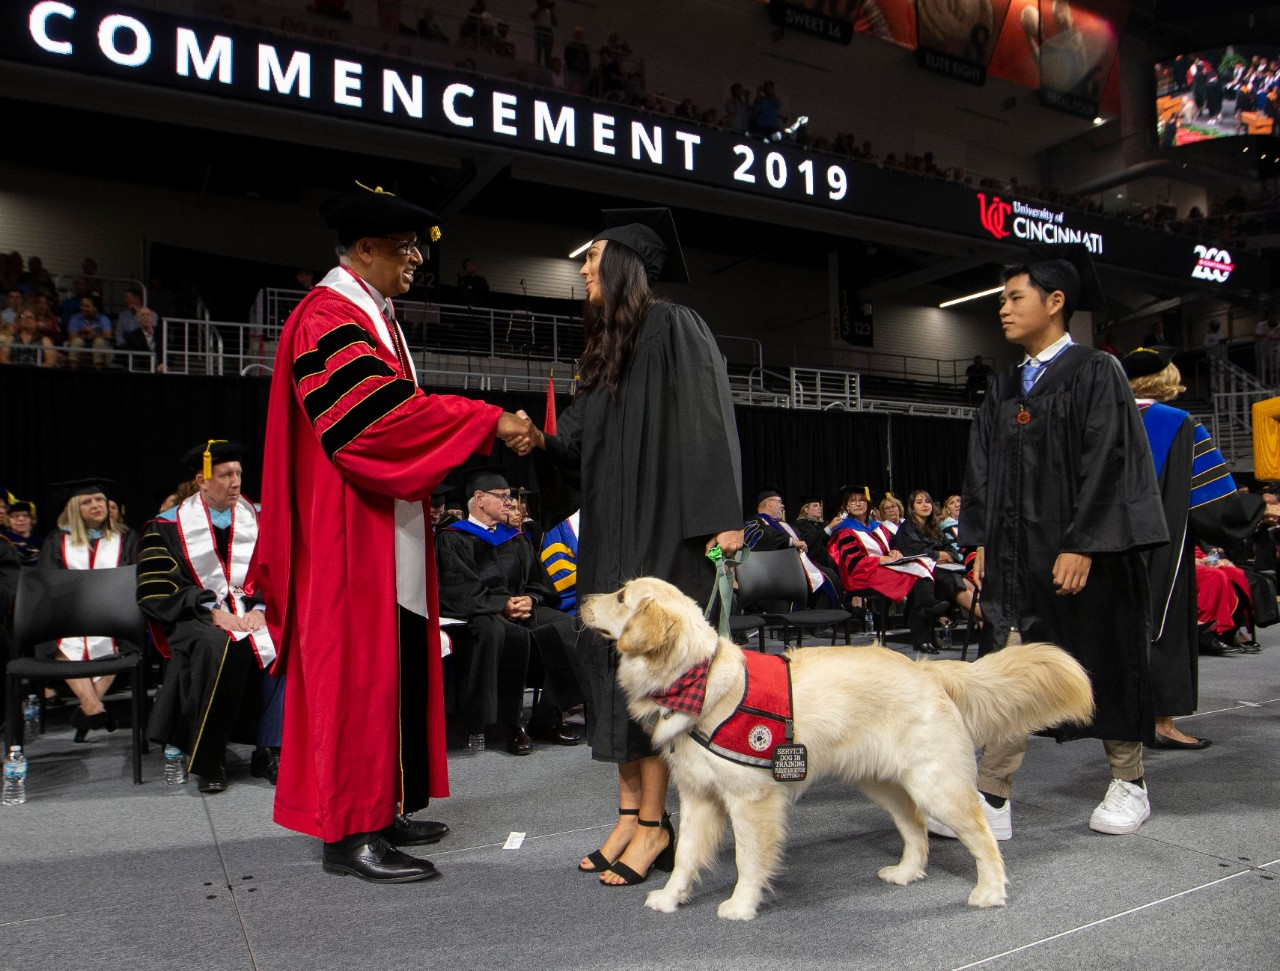 A student in her cap and gown shakes hands with President Pinto alongside her service dog.